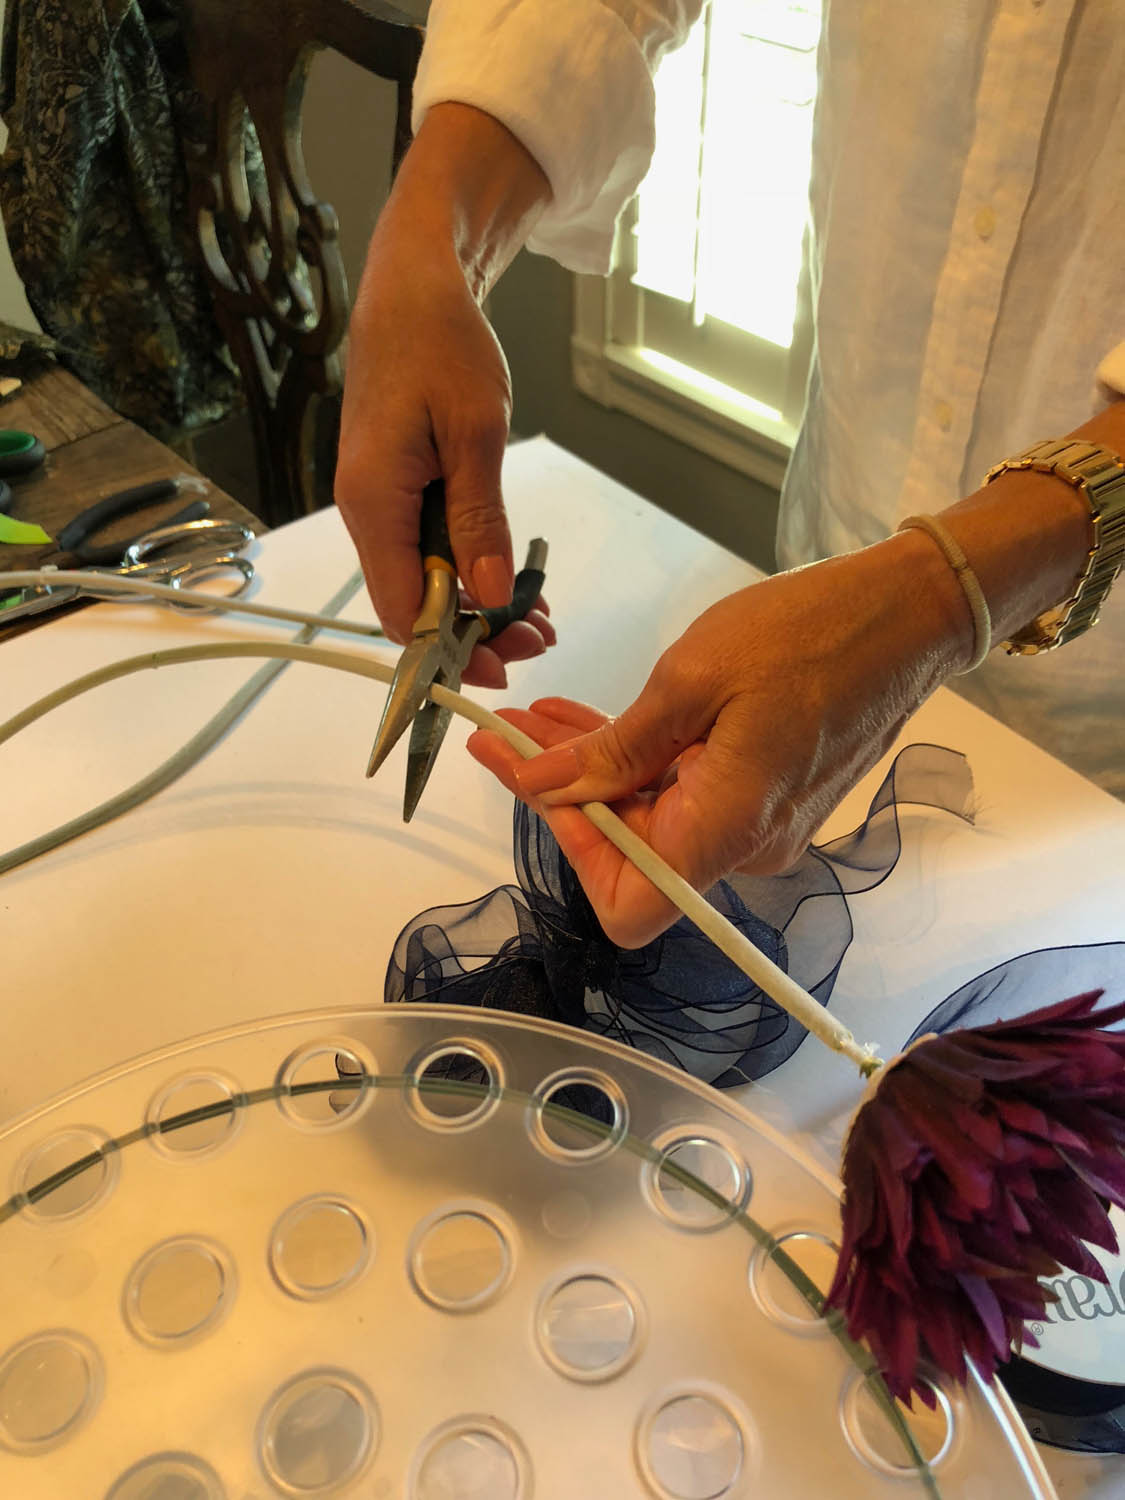 cutting wire stems of silk flowers for simple centerpiece arrangements